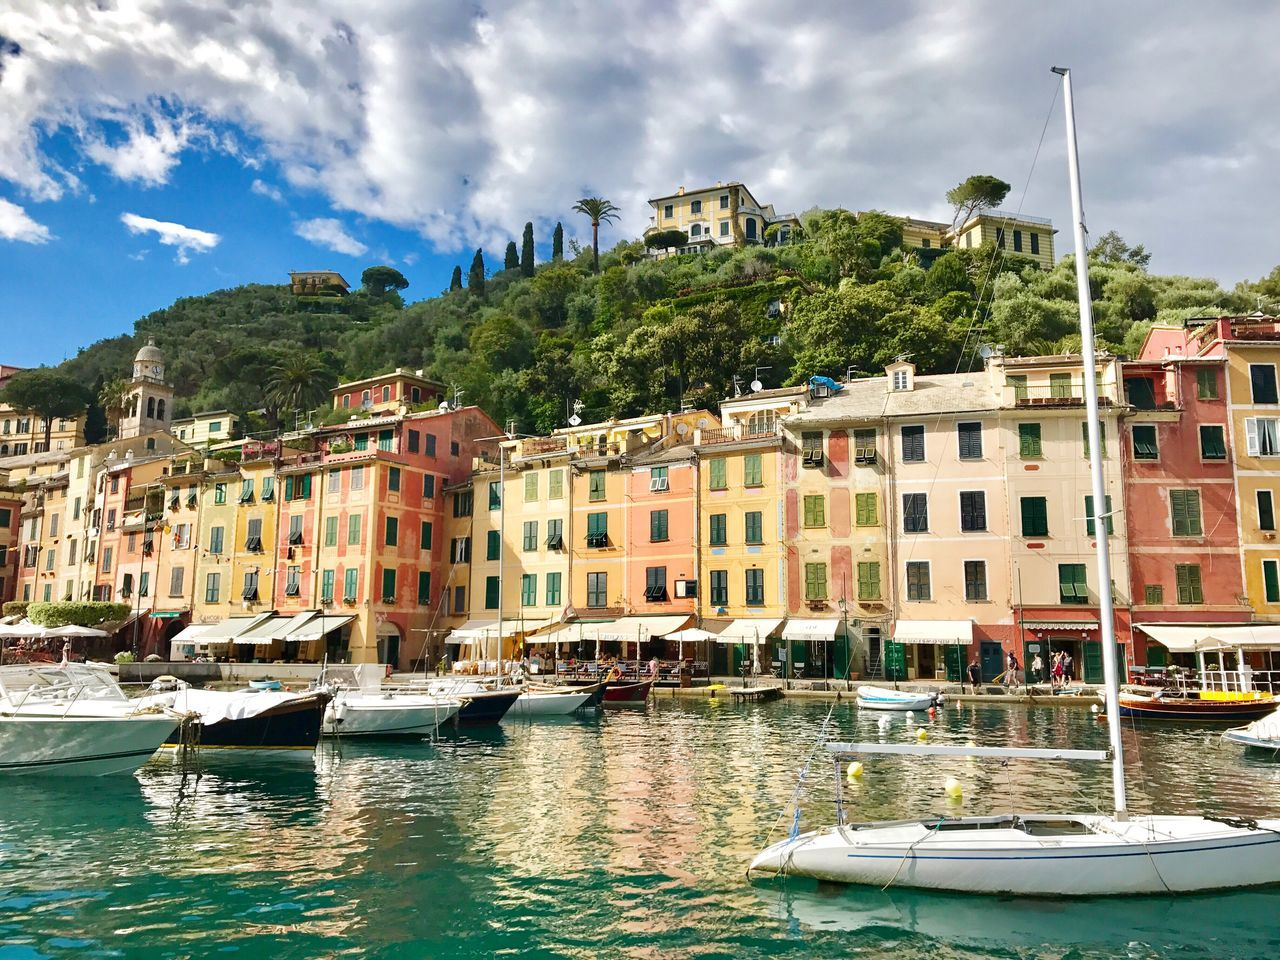 Neighborhood Map Architecture Building Exterior Sky Water Nautical Vessel Built Structure Waterfront Cloud - Sky Day Mode Of Transport Outdoors No People Tree Nature Fishing Boat Fishing Village Italia Riviera Italian Riviera